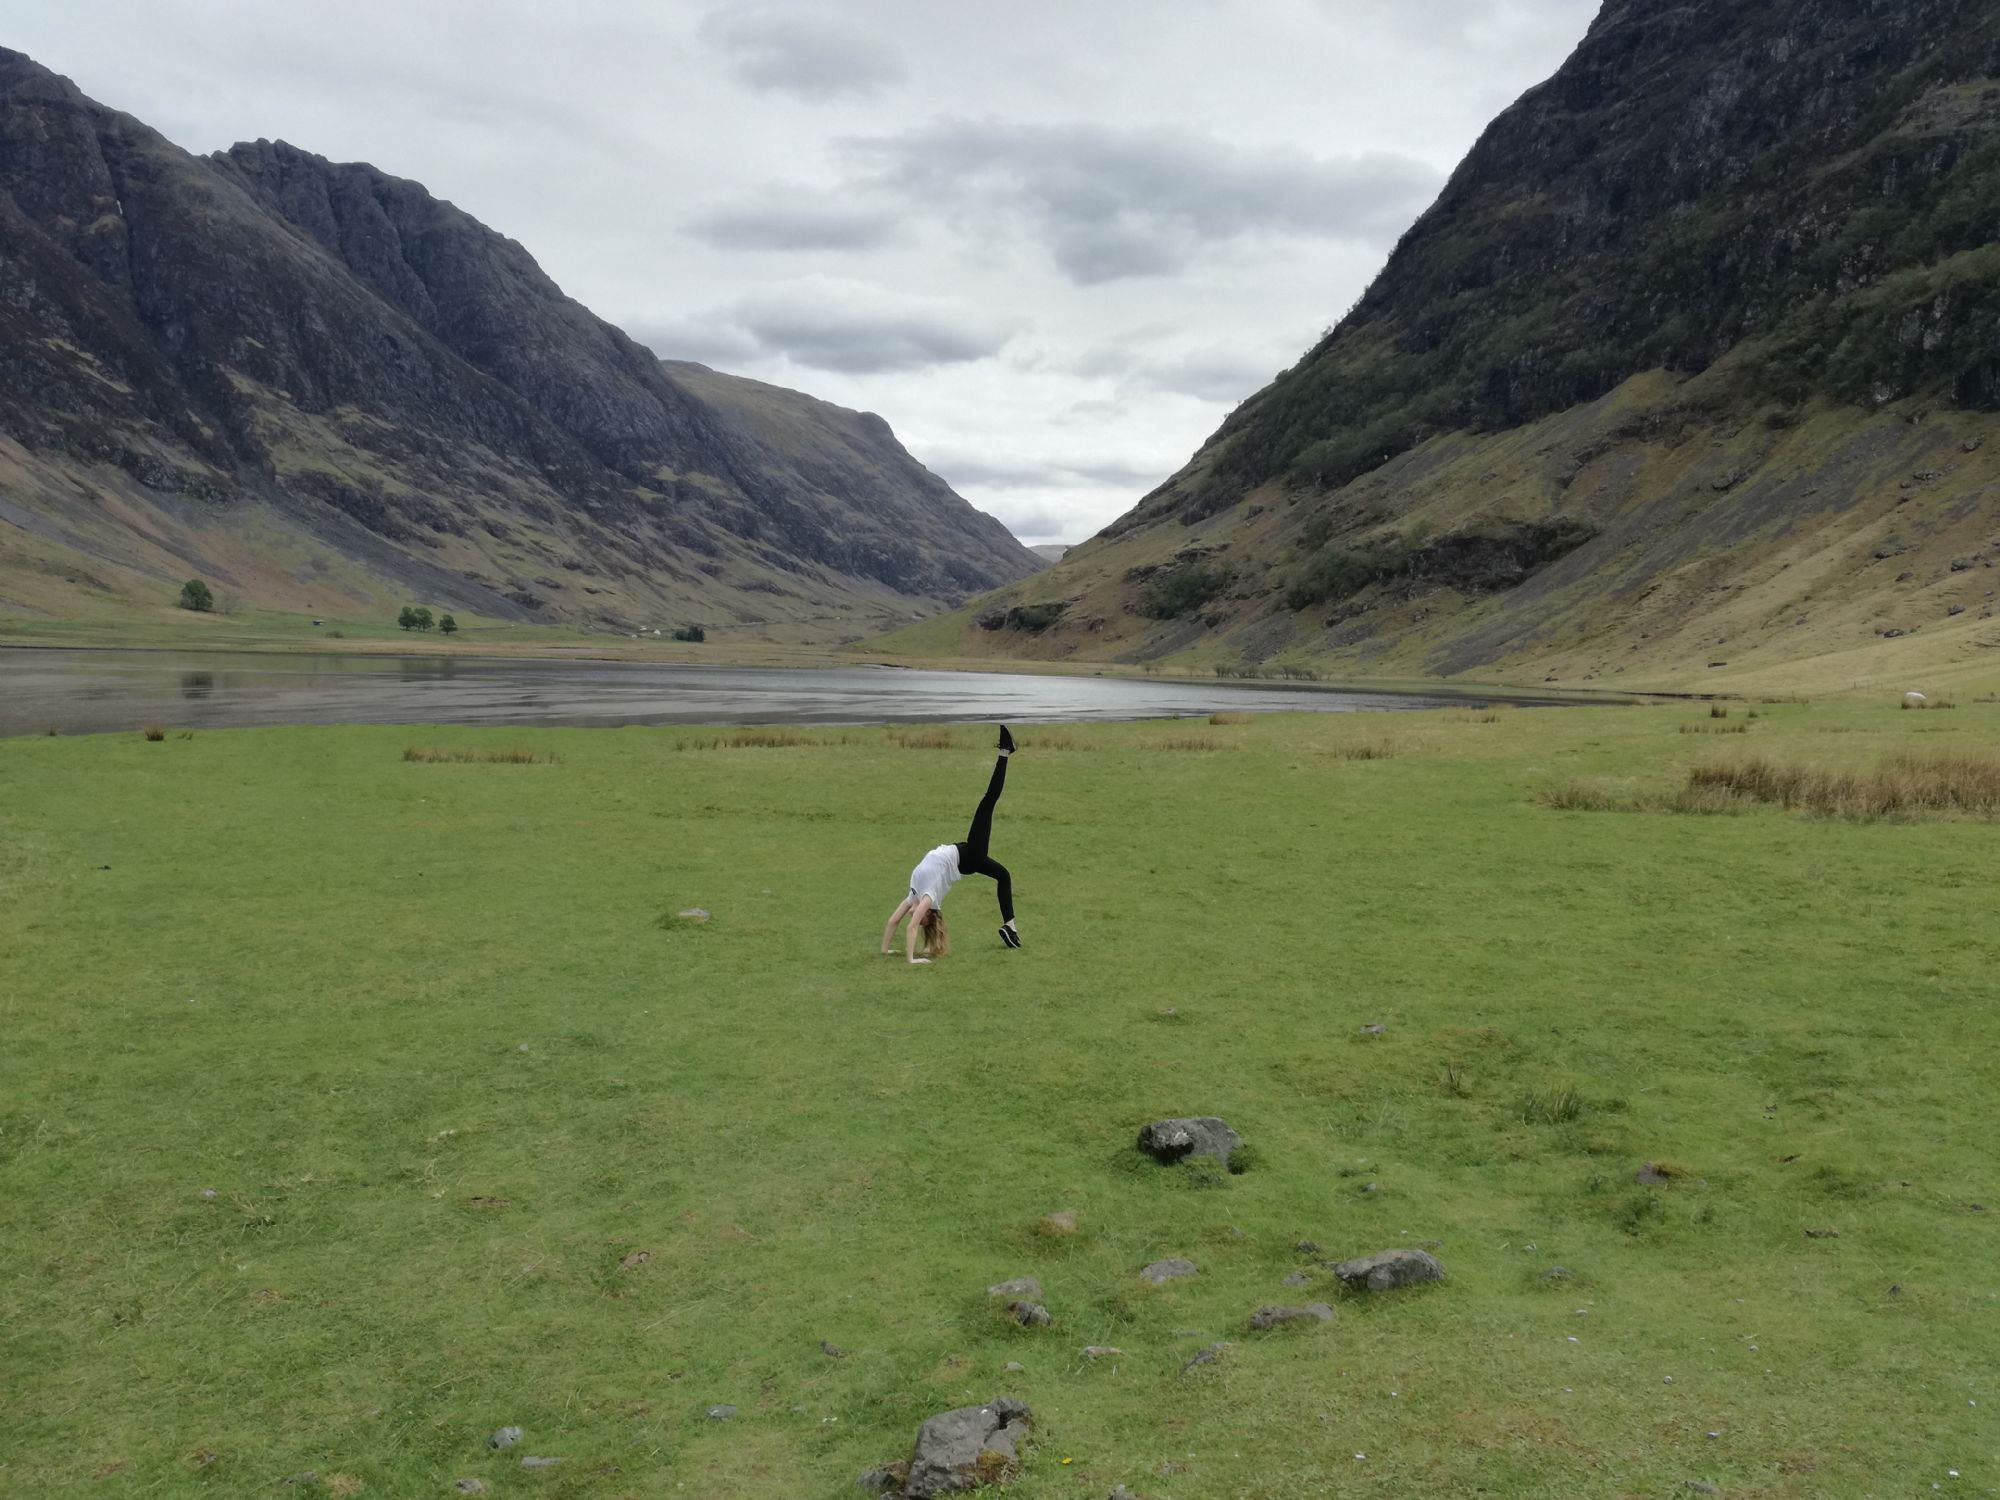 Dancing in the Highlands